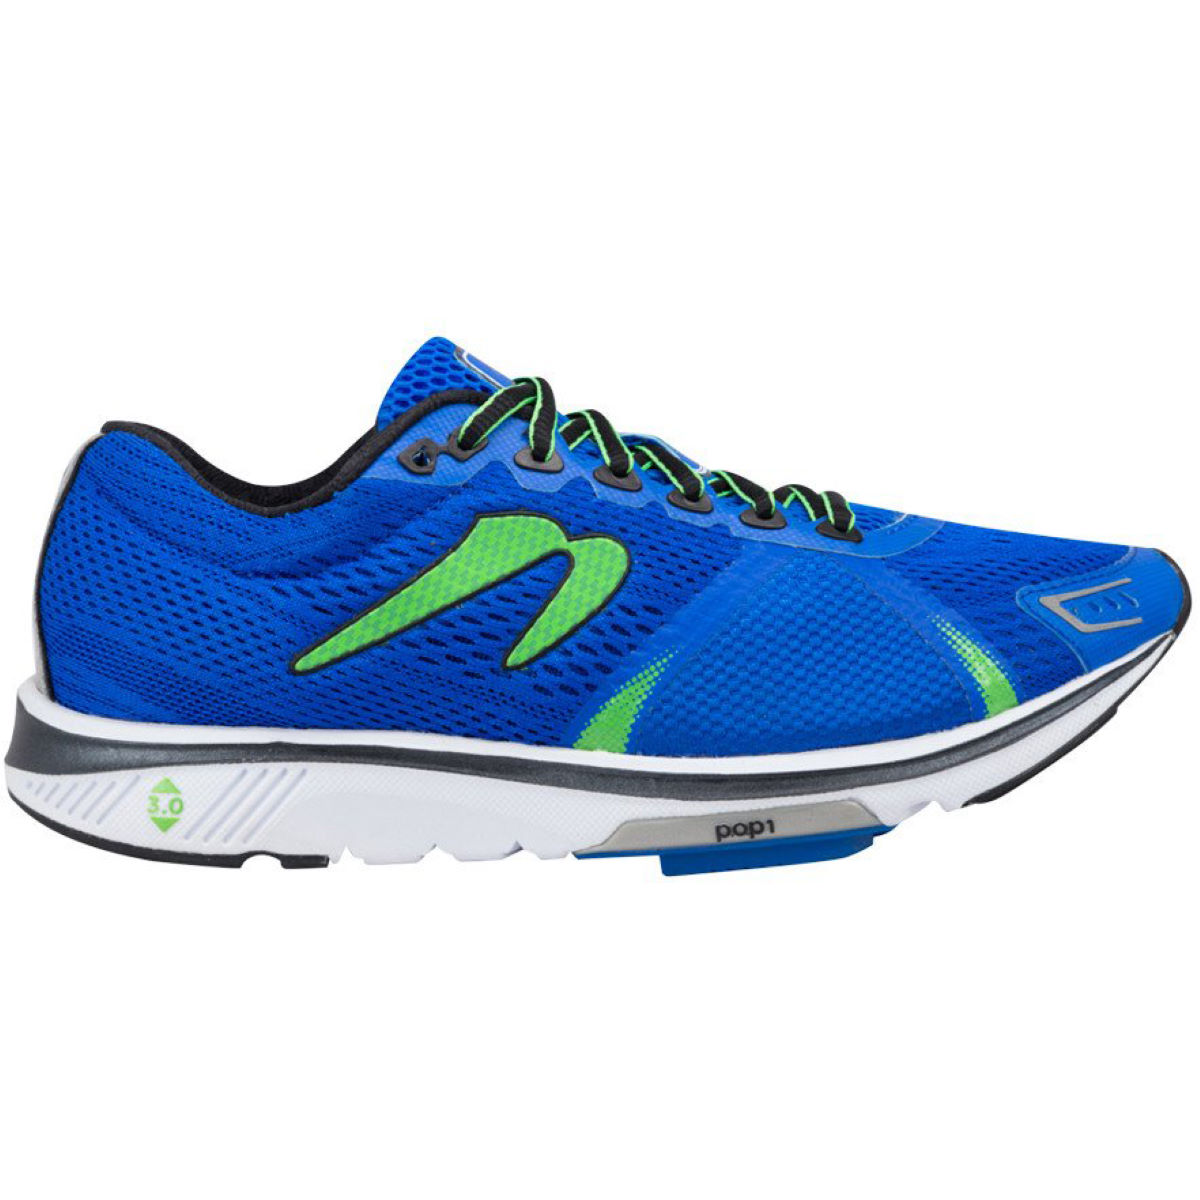 Chaussures Newton Running Shoes Gravity VI - 9 UK Bleu